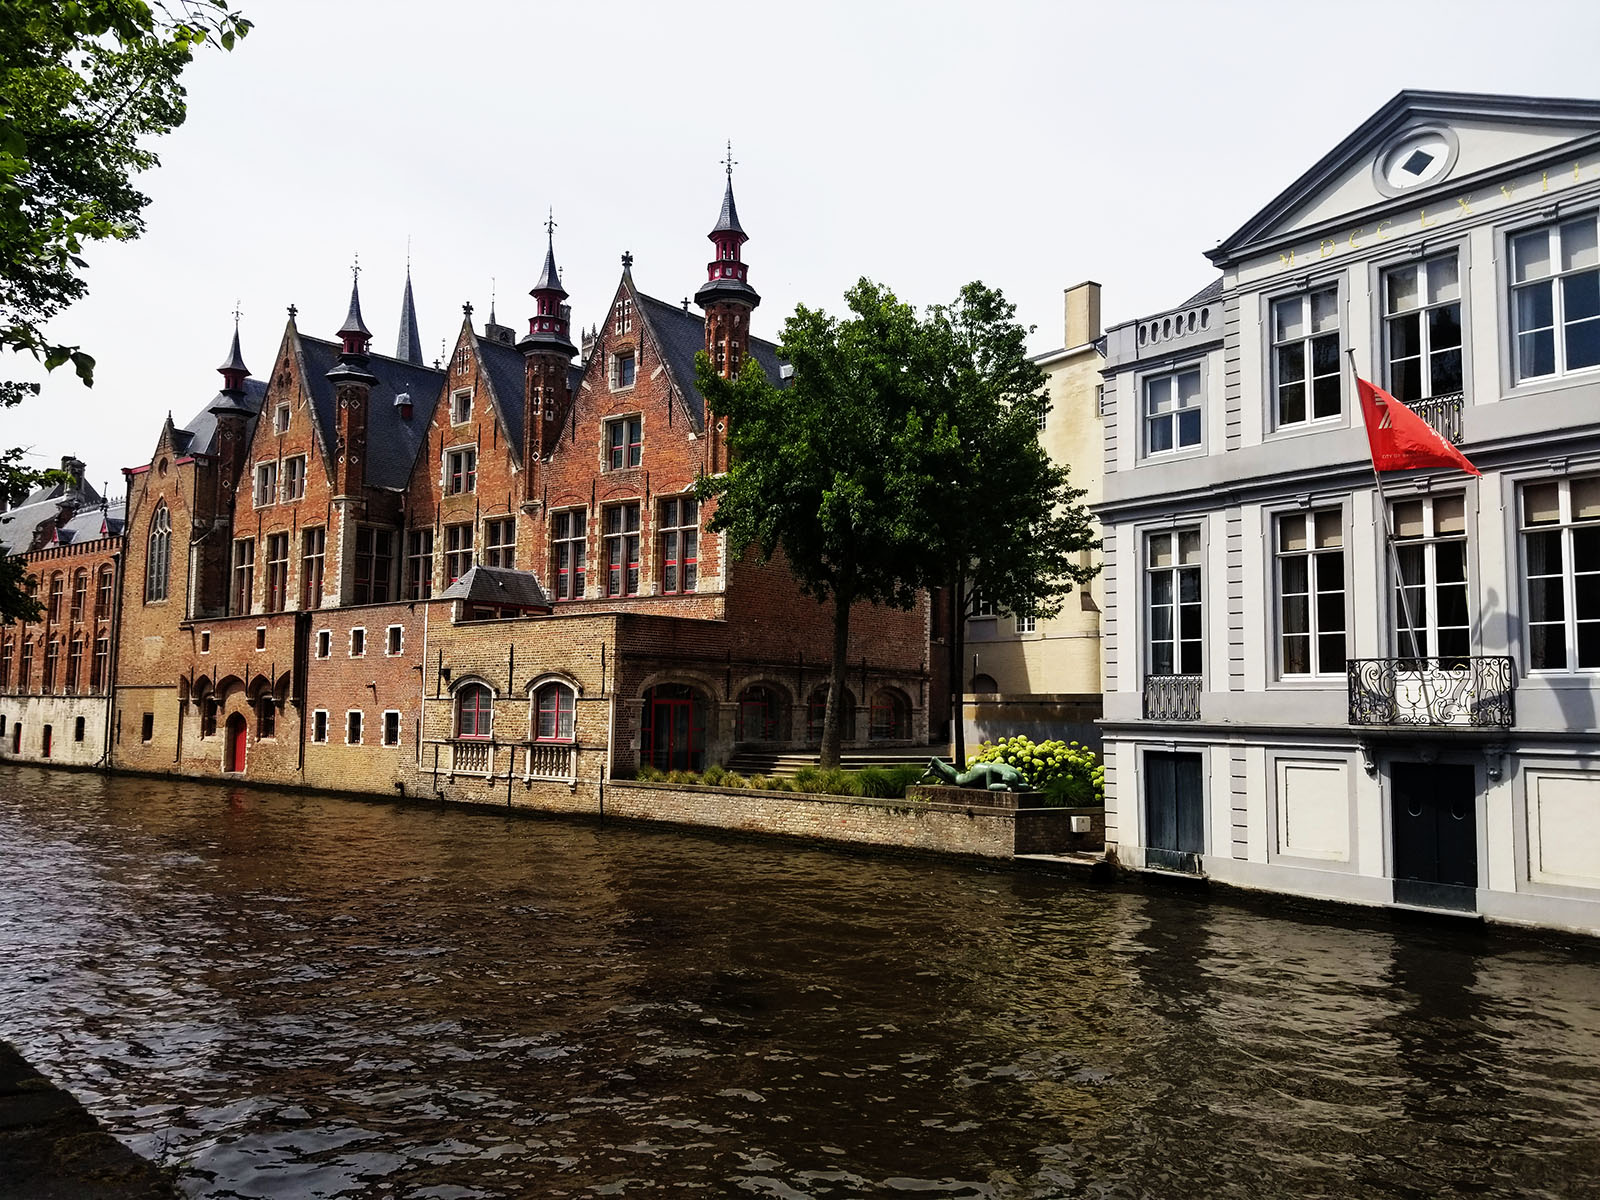 Homes along the canal in Bruges